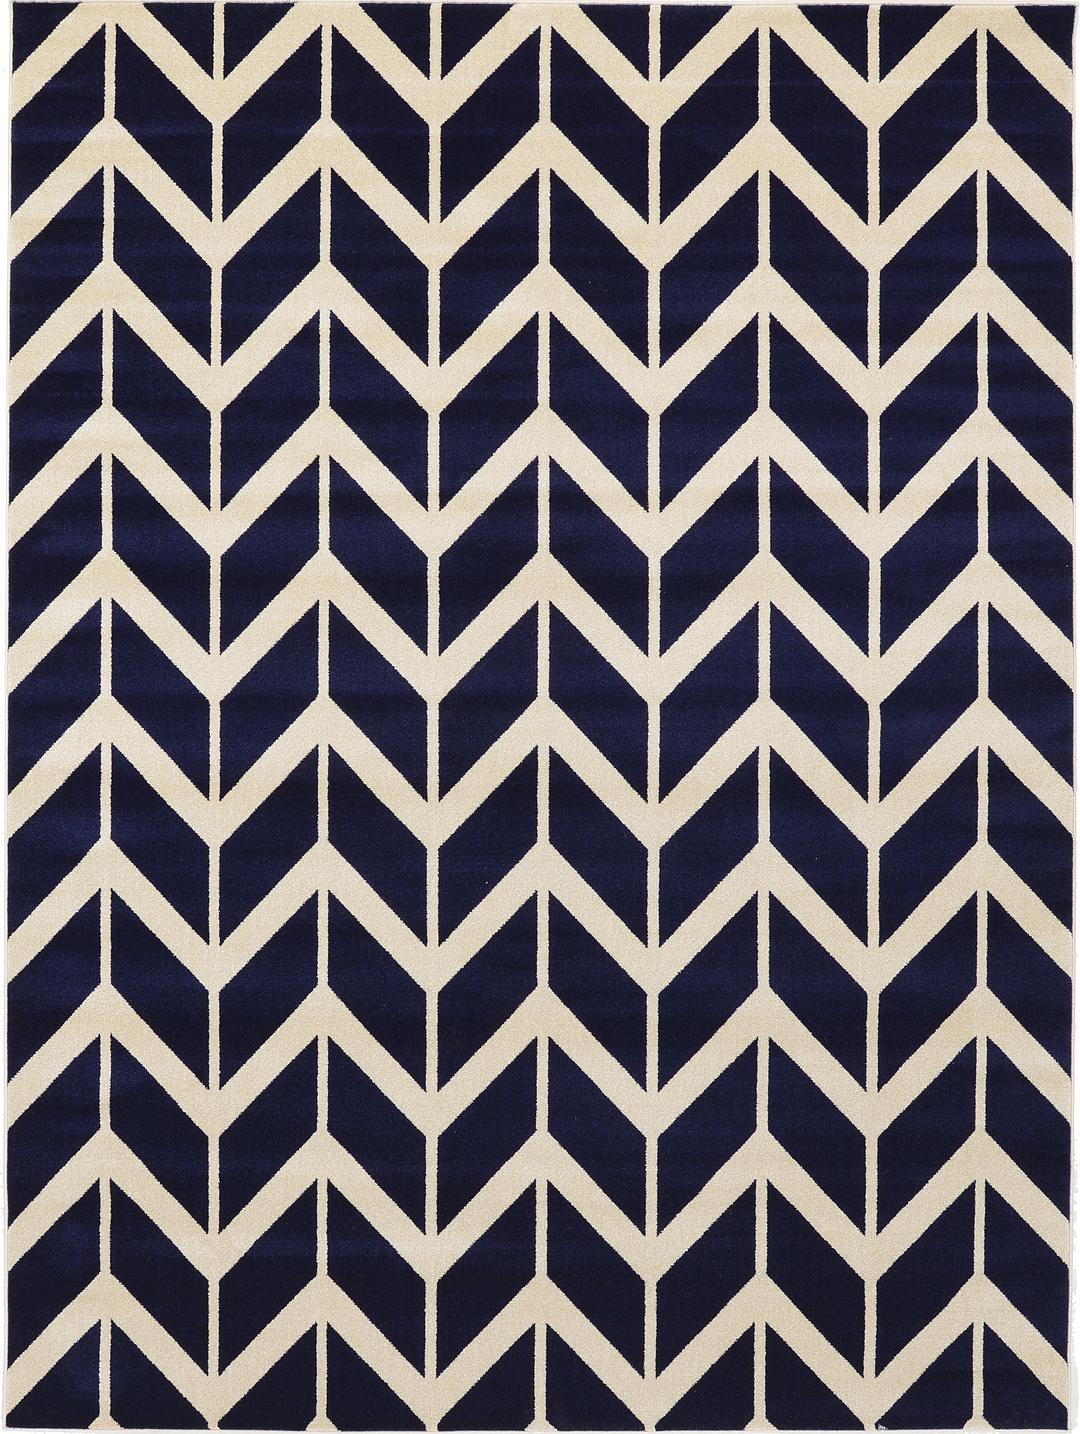 Well-liked Navy Blue 9' x 12' Chevron Rug | Area Rugs | eSaleRugs RV48